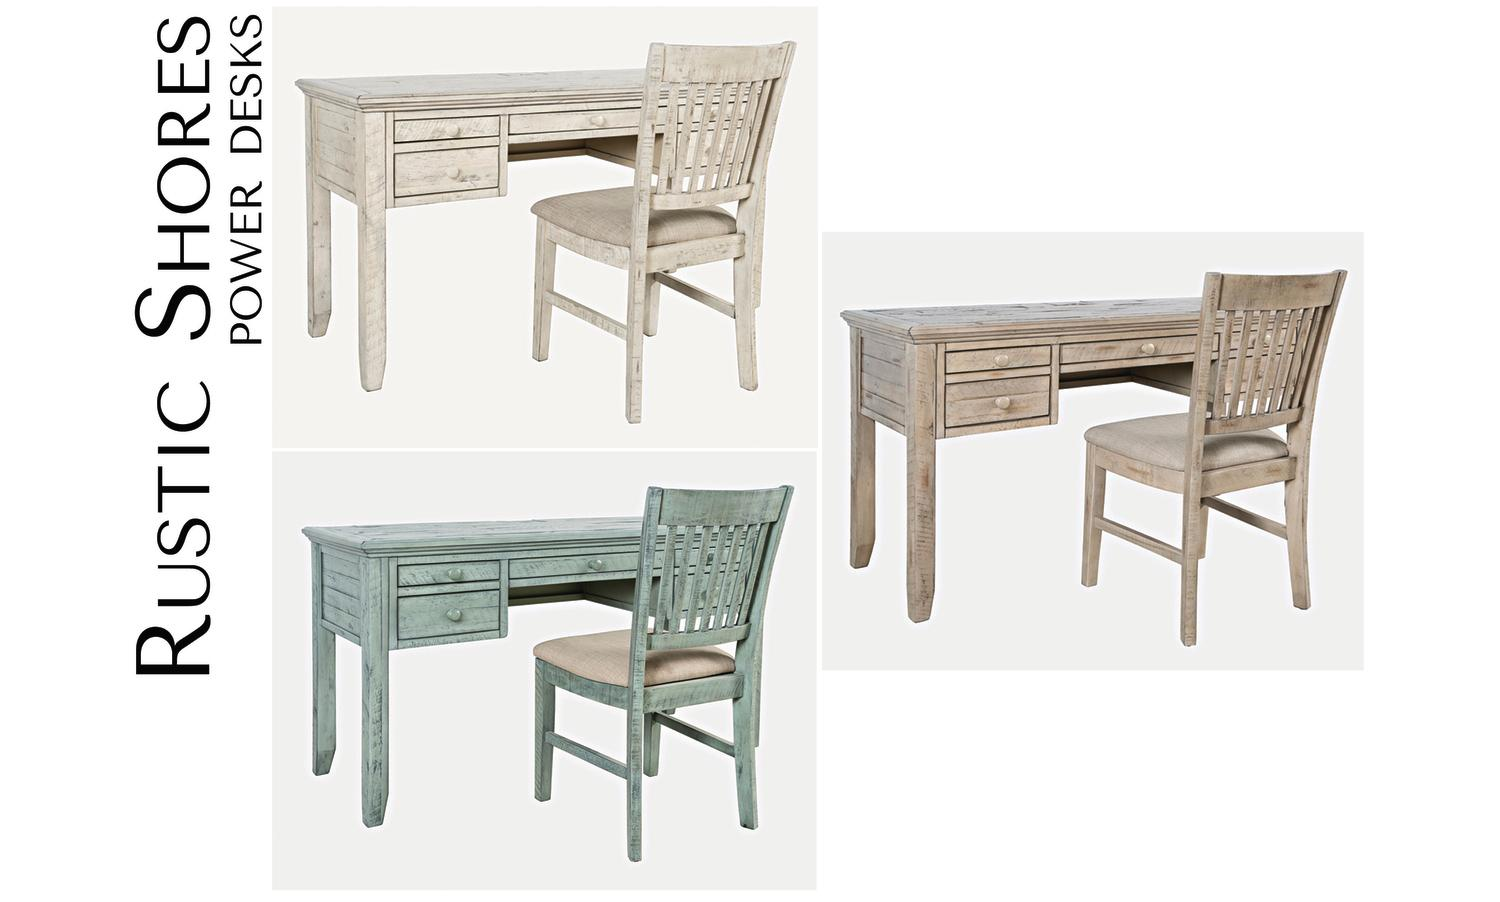 JofranRustic Shores Power Desk And Chair